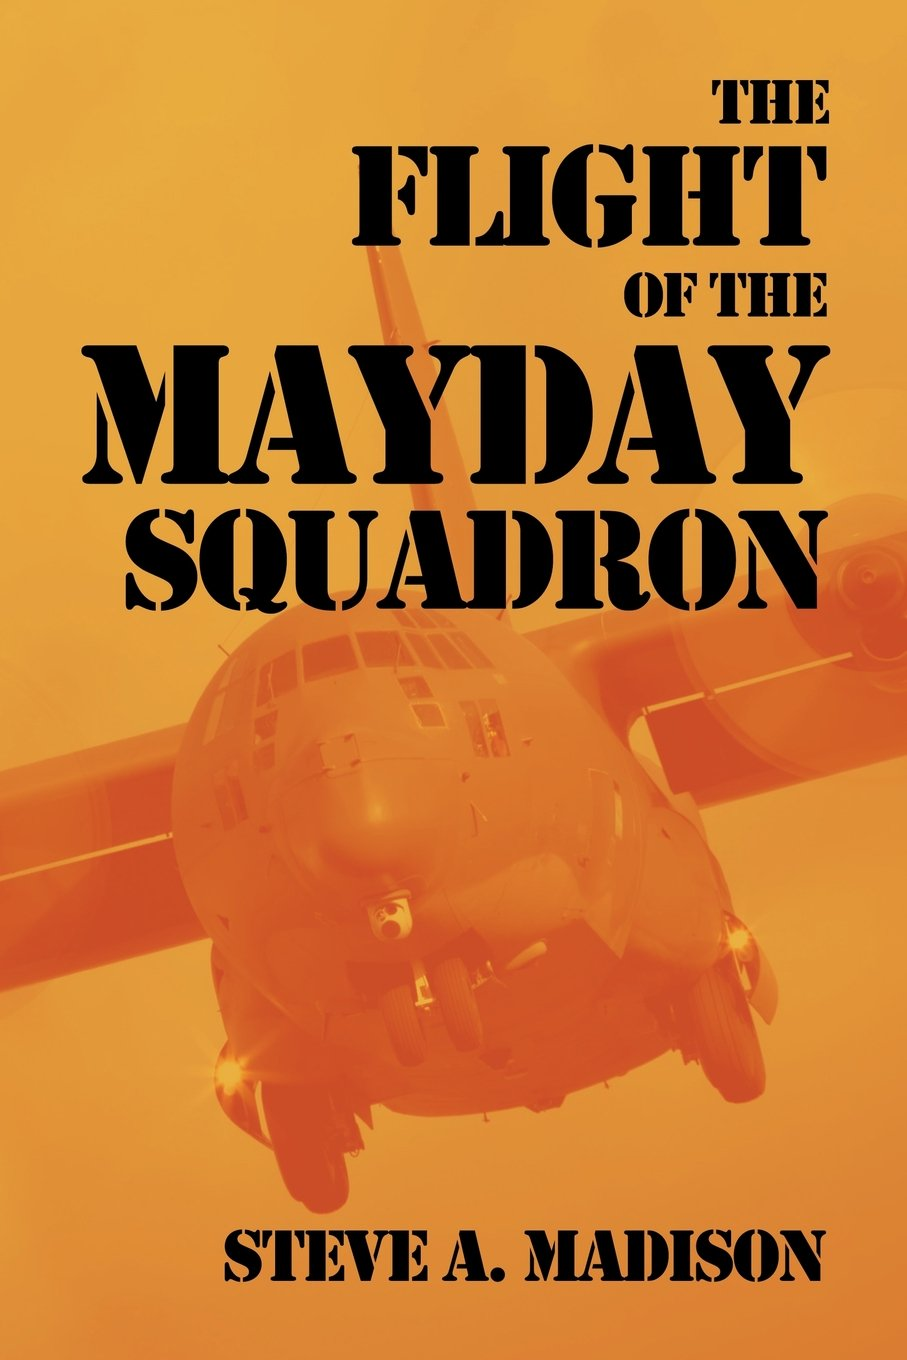 Download The Flight of the Mayday Squadron: An American Mythology (The Mayday Trilogy) (Volume 1) ebook